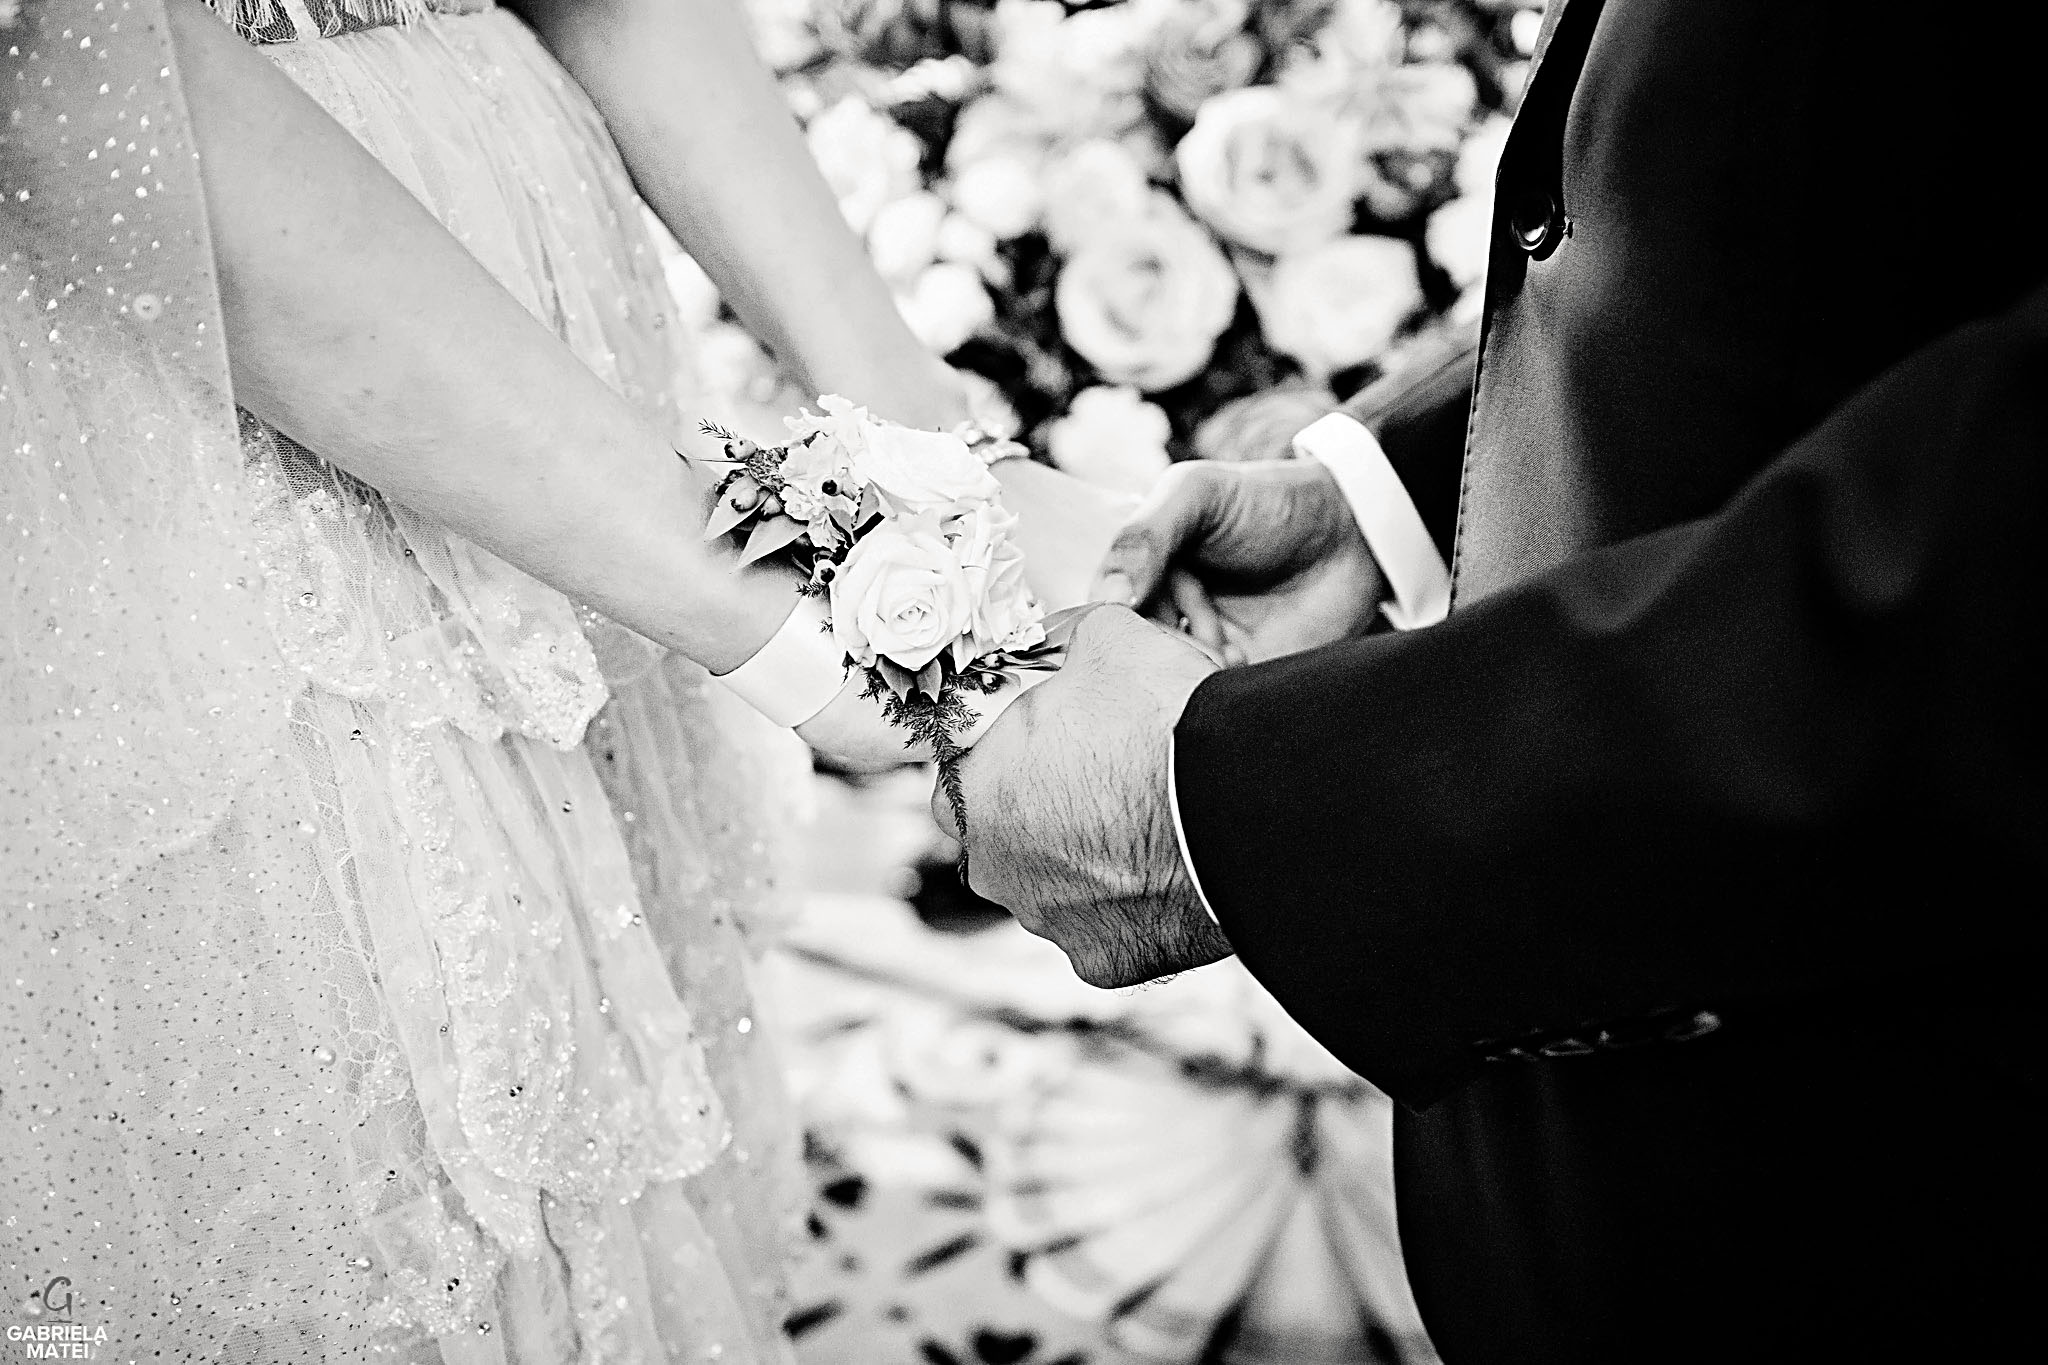 Detail shot of bride and groom holding hands during civil wedding at the Ritz hotel in London